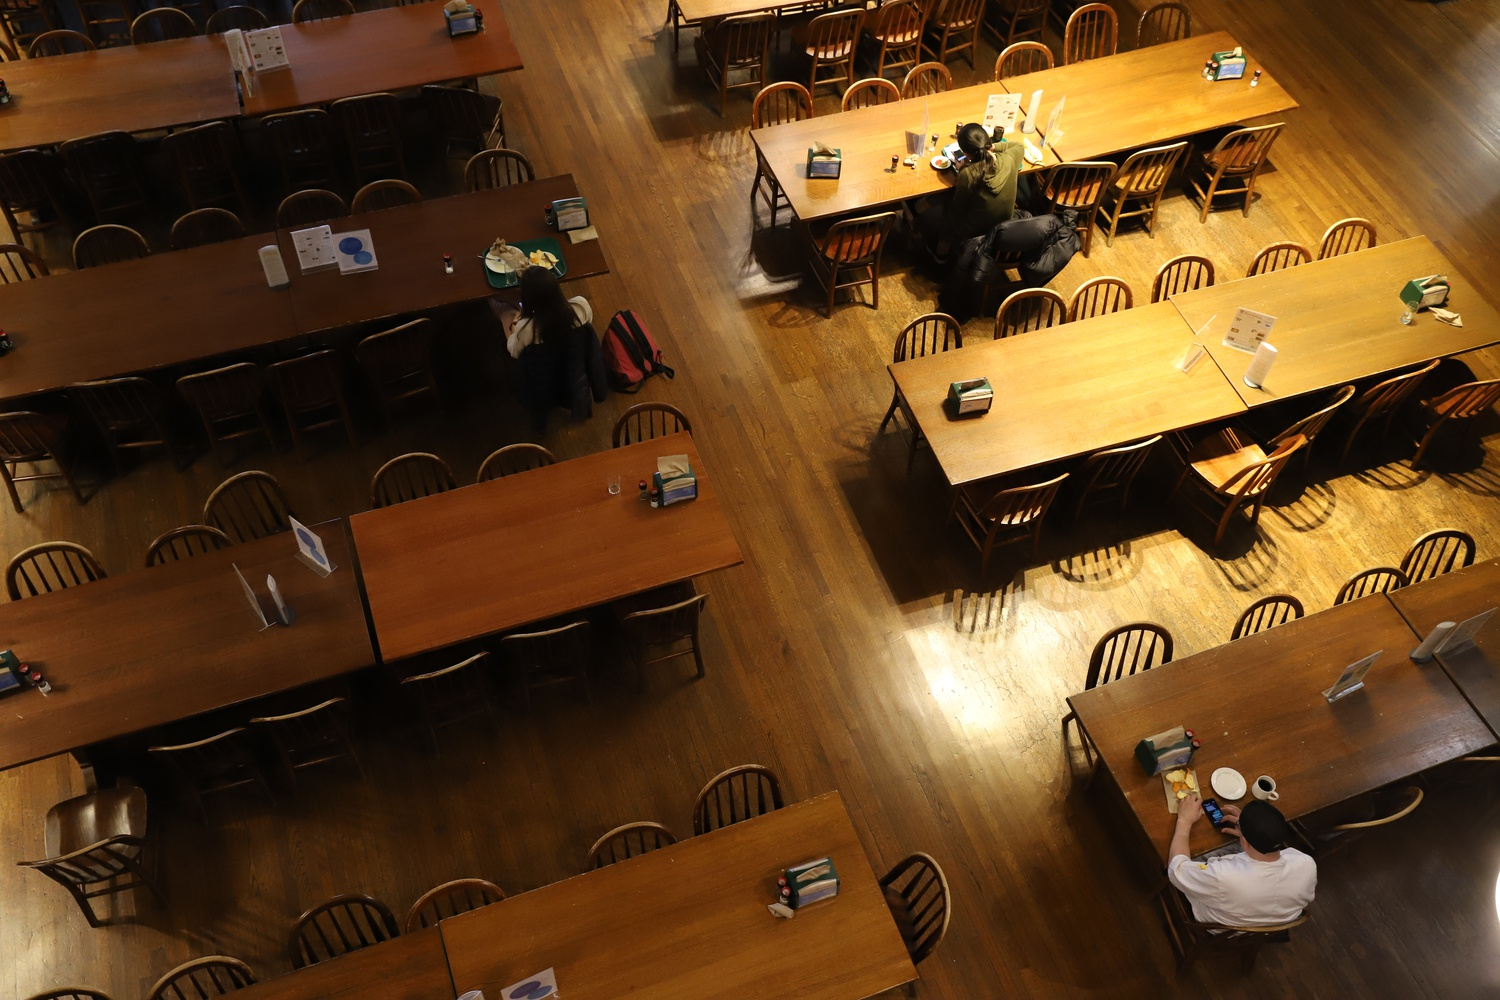 Following the College's announcement in March that most students must vacate campus due to the novel coronavirus outbreak, Annenberg Dining Hall was almost completely vacant.